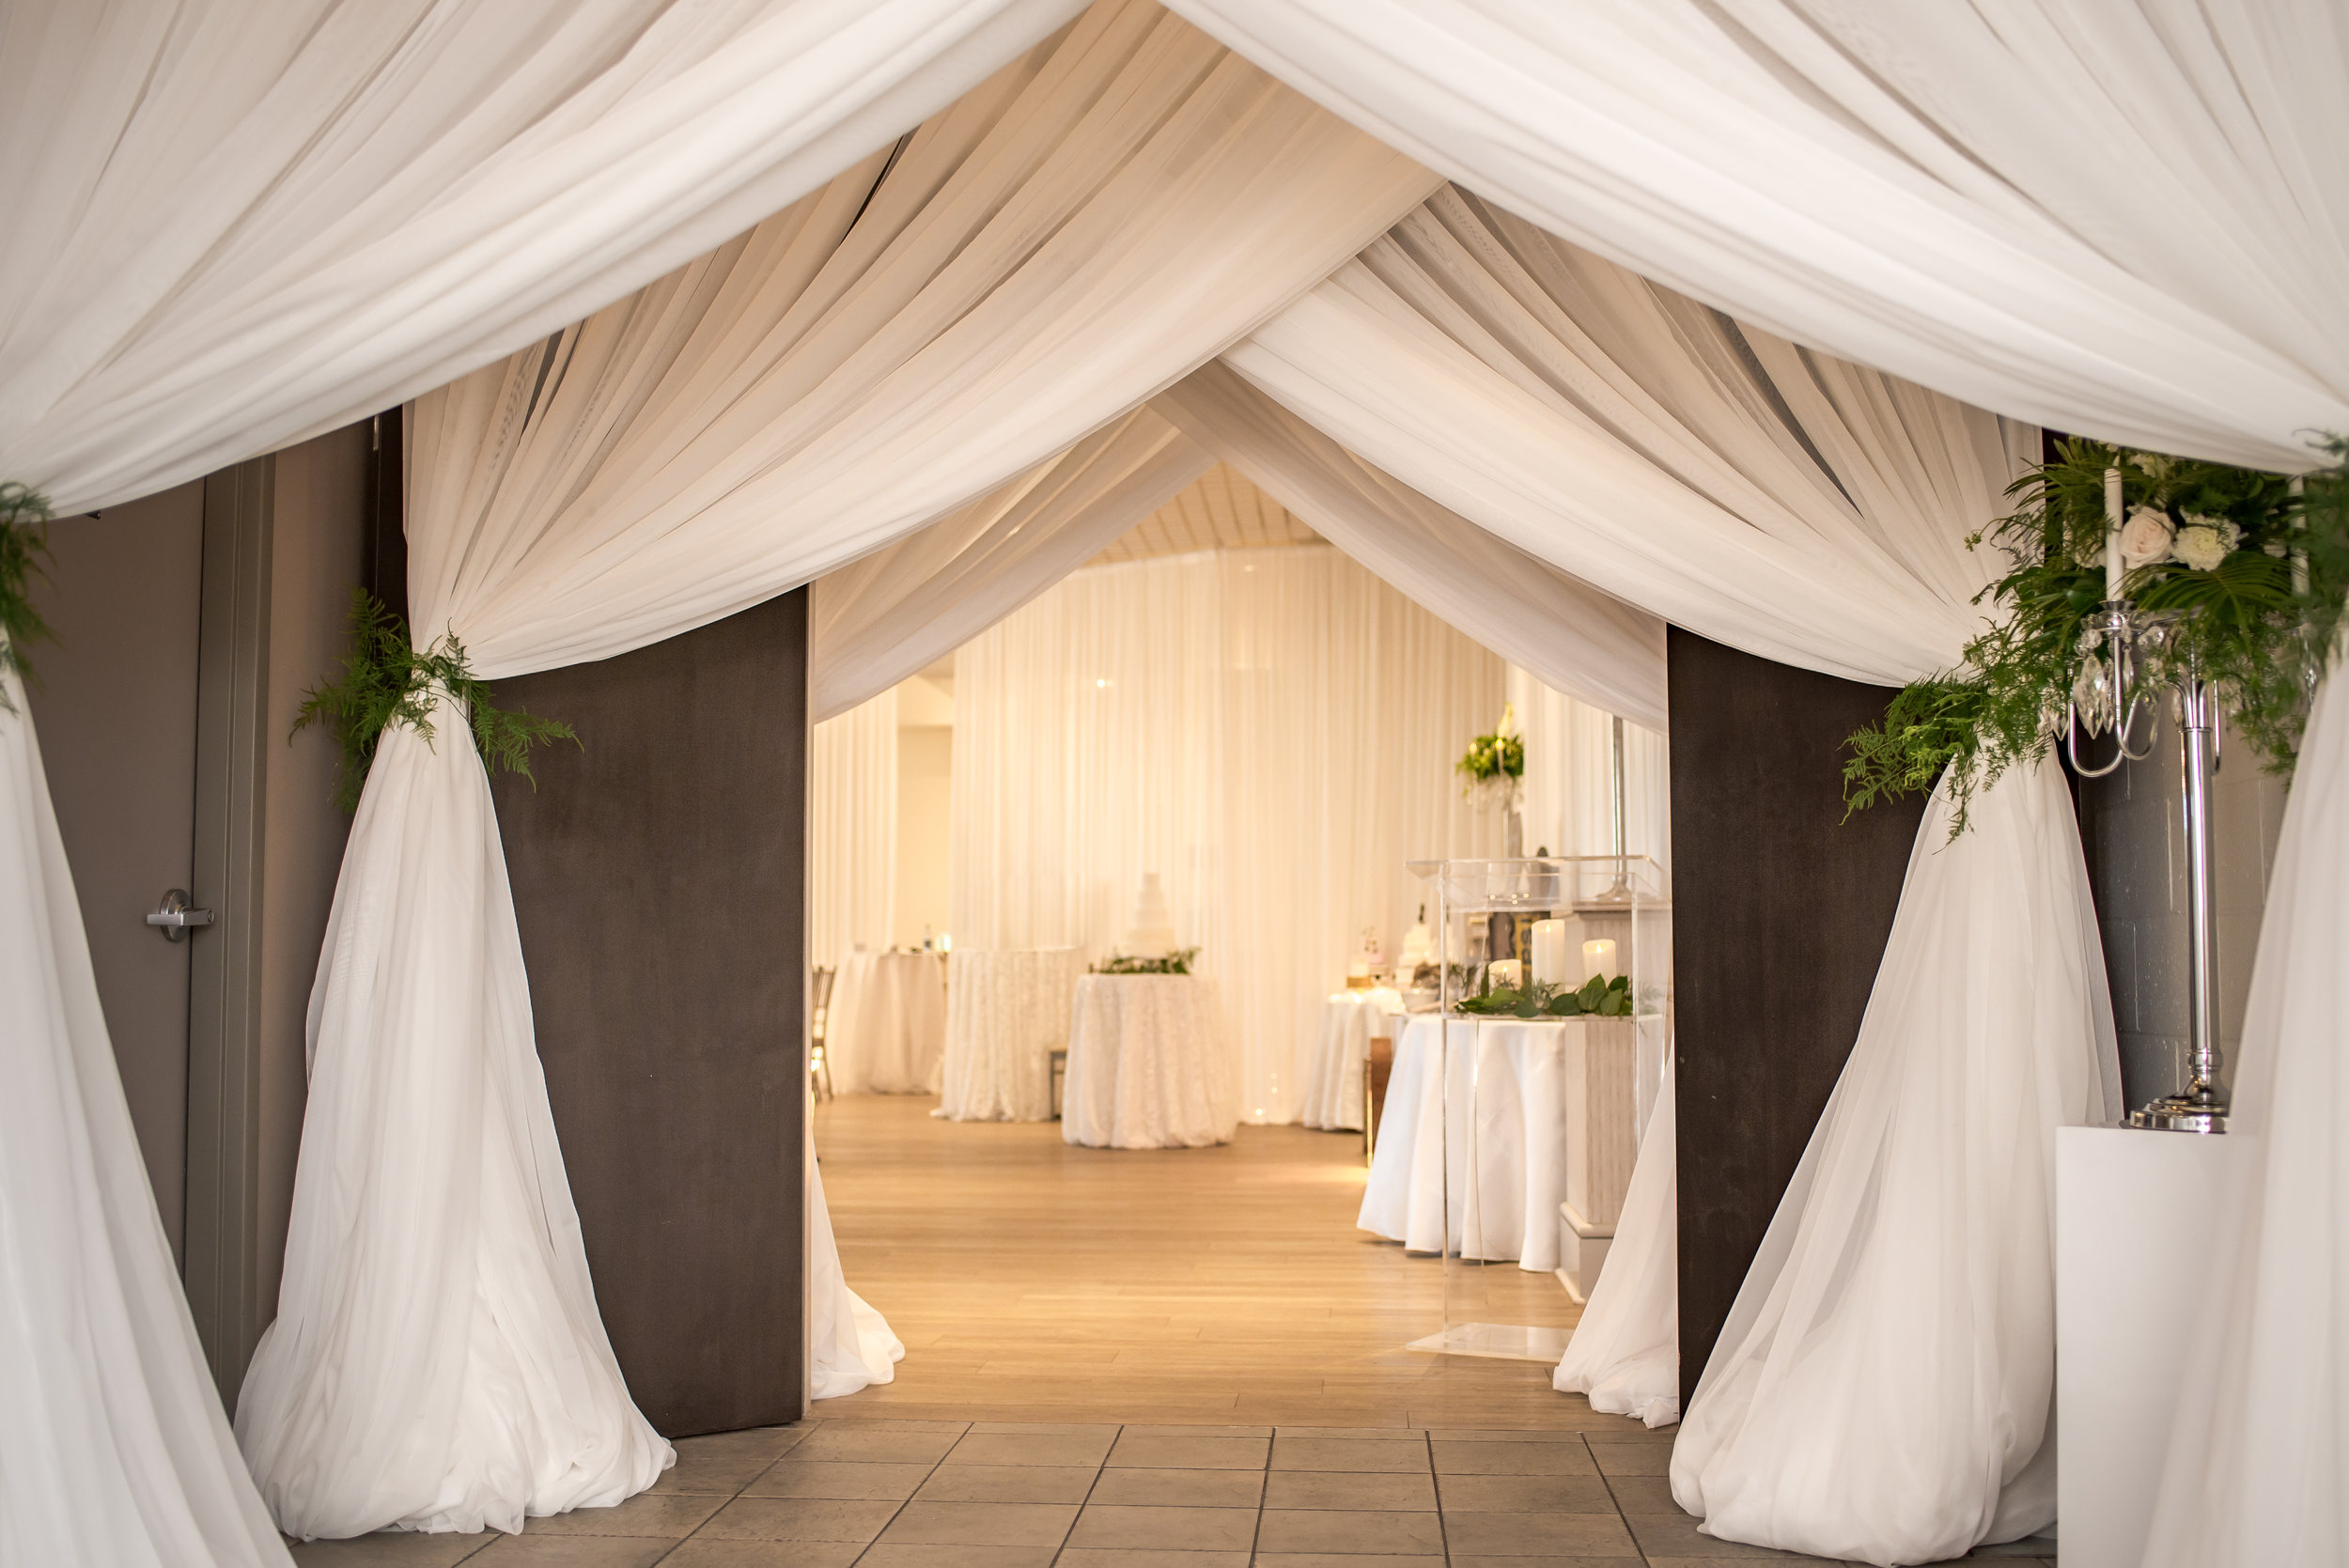 Guests of the Bridal Open House were welcomed into the show through the Ballroom entrance, which was draped in layers of romantic white sheers by Above & Beyond Event Design.